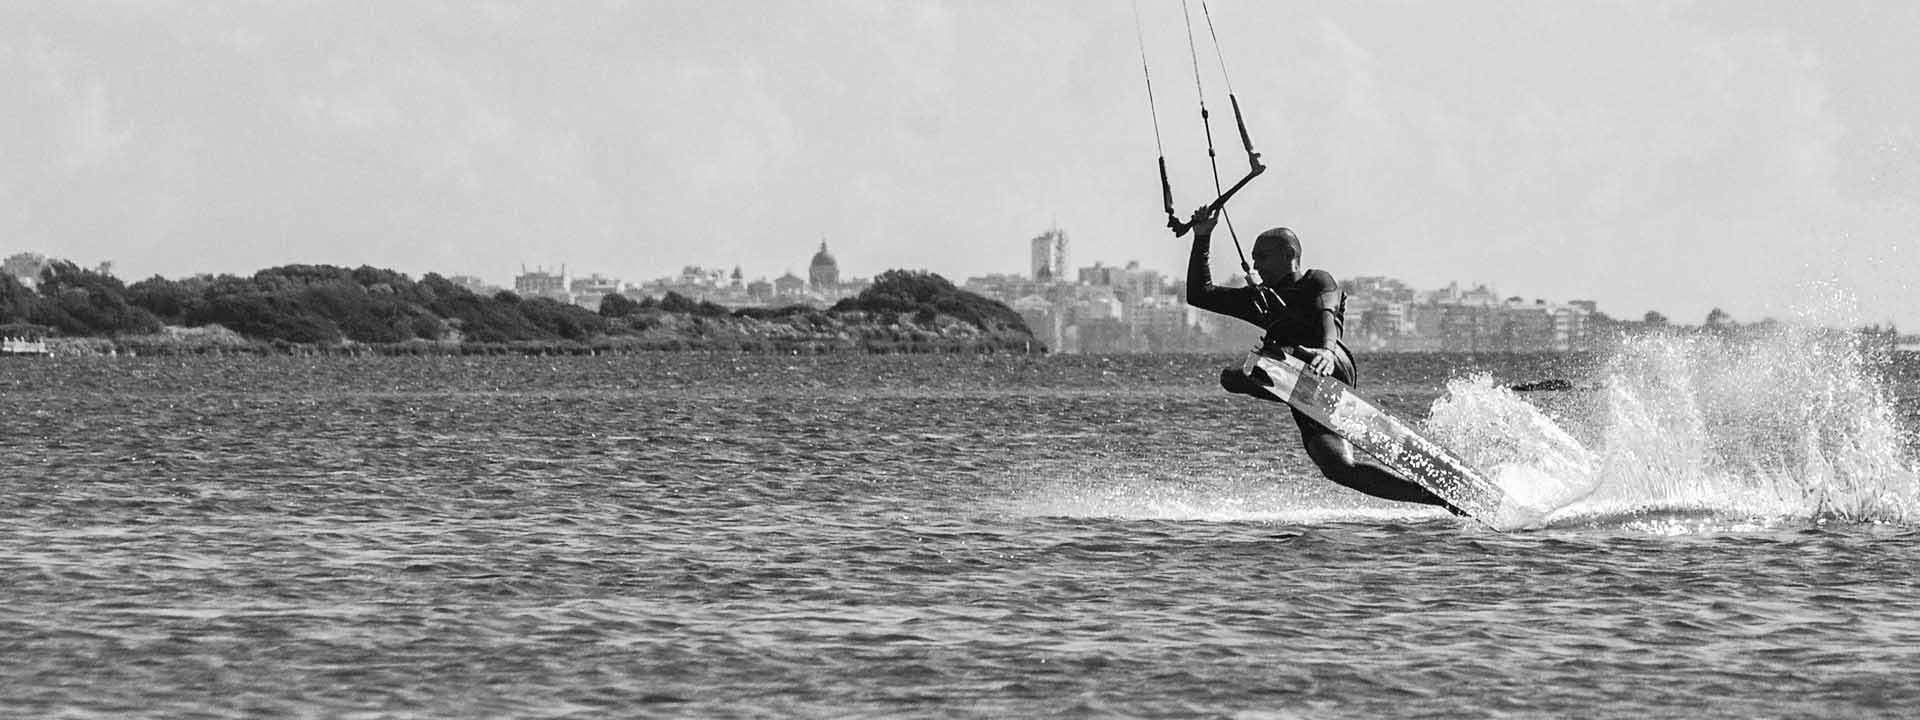 Kitesurf news Stagnone